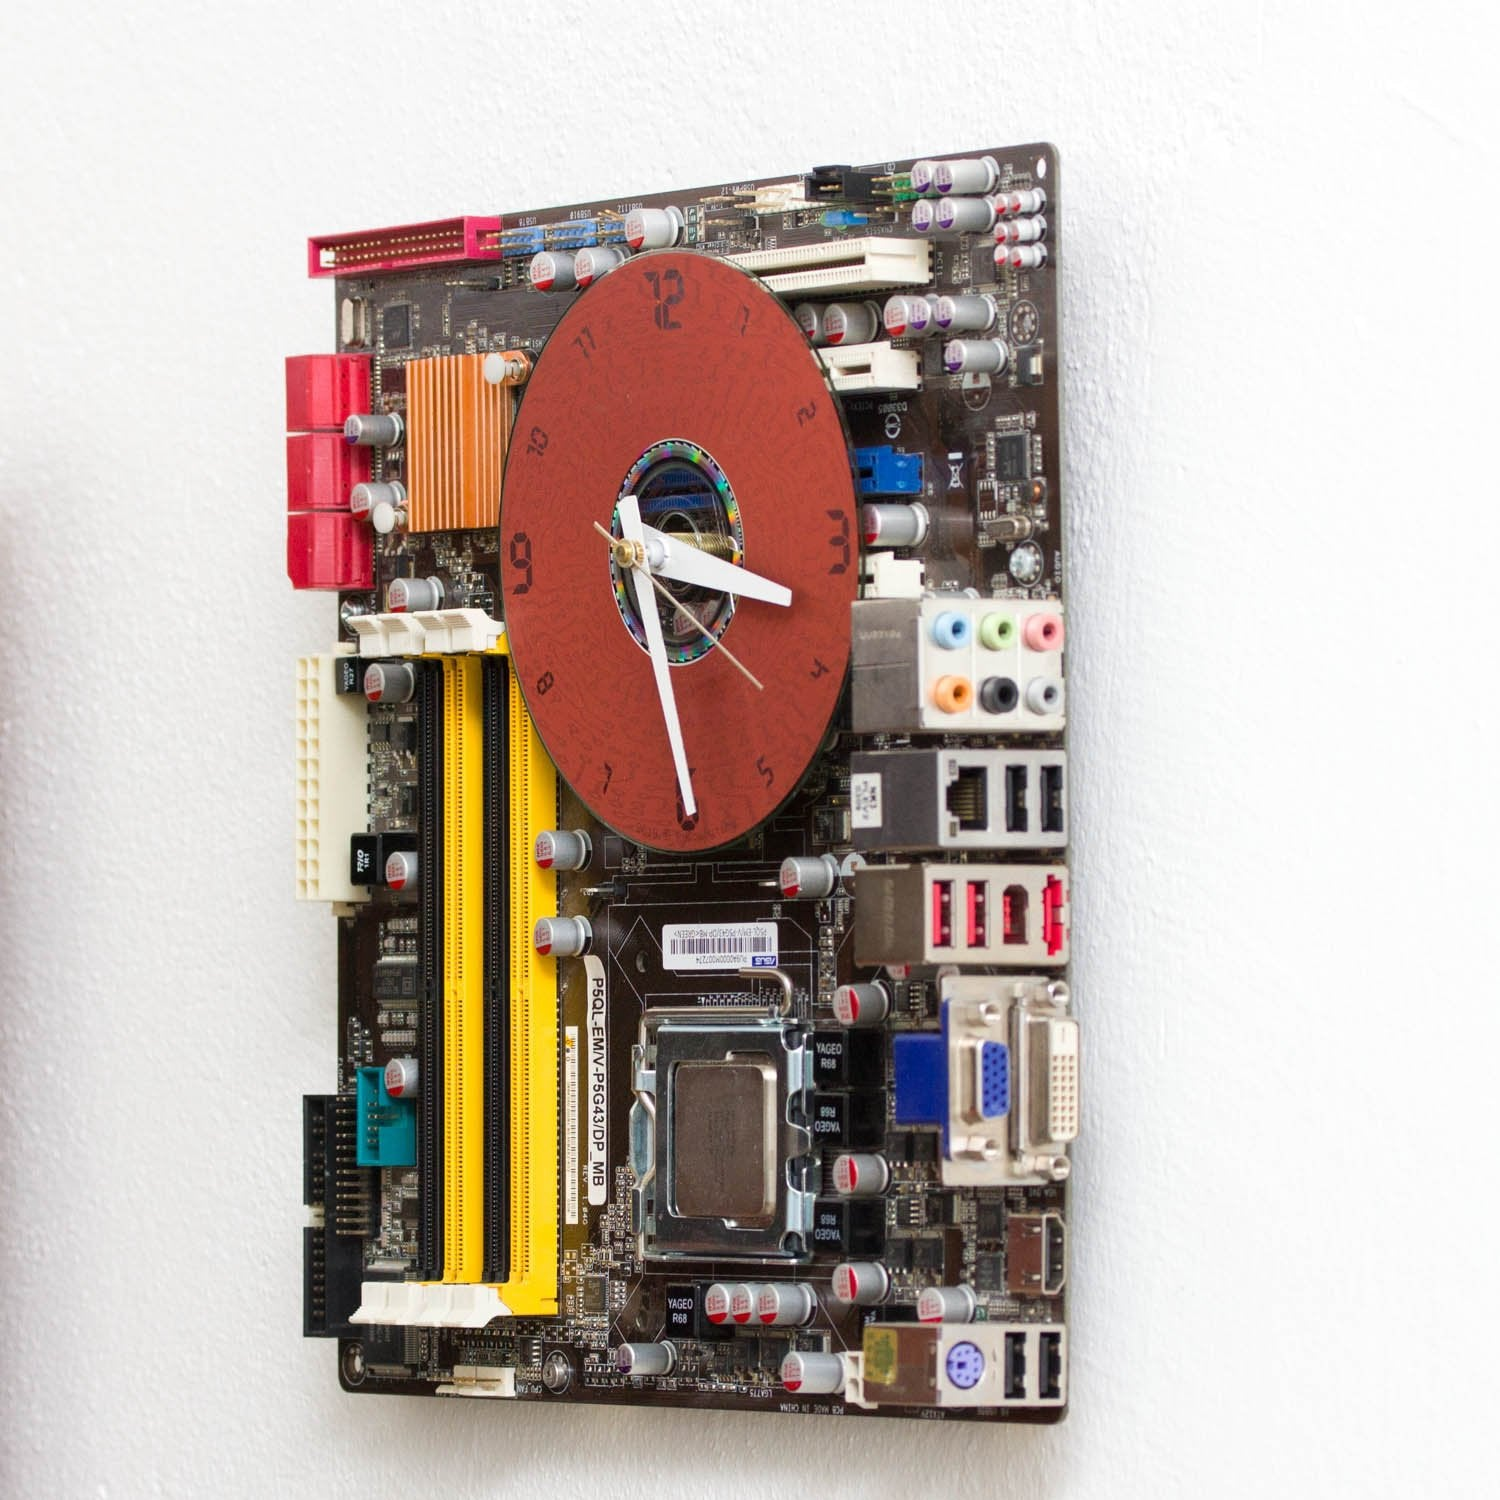 Geeky Wall Clock made of black / dark brown circuit board